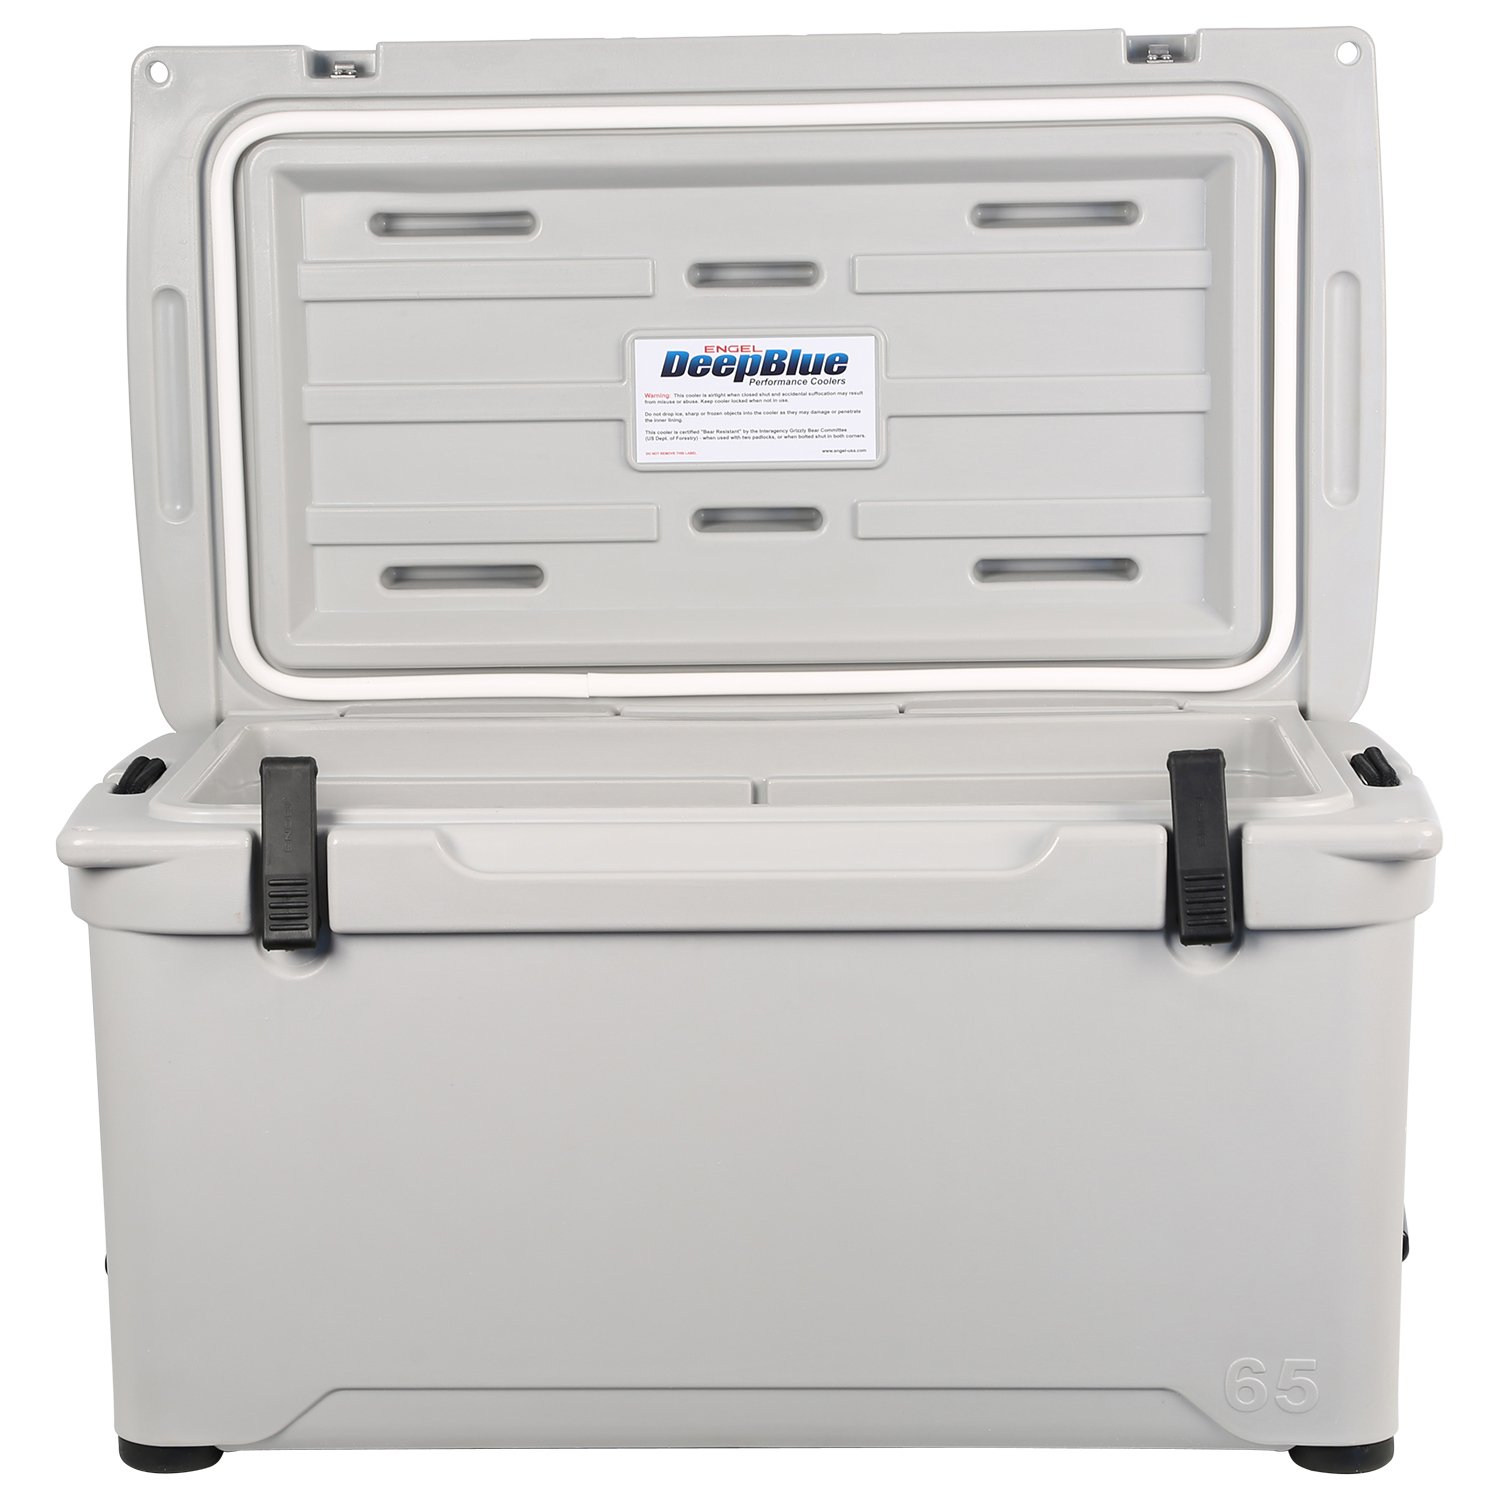 Engel Coolers High Performance ENG65 Roto-Molded Cooler